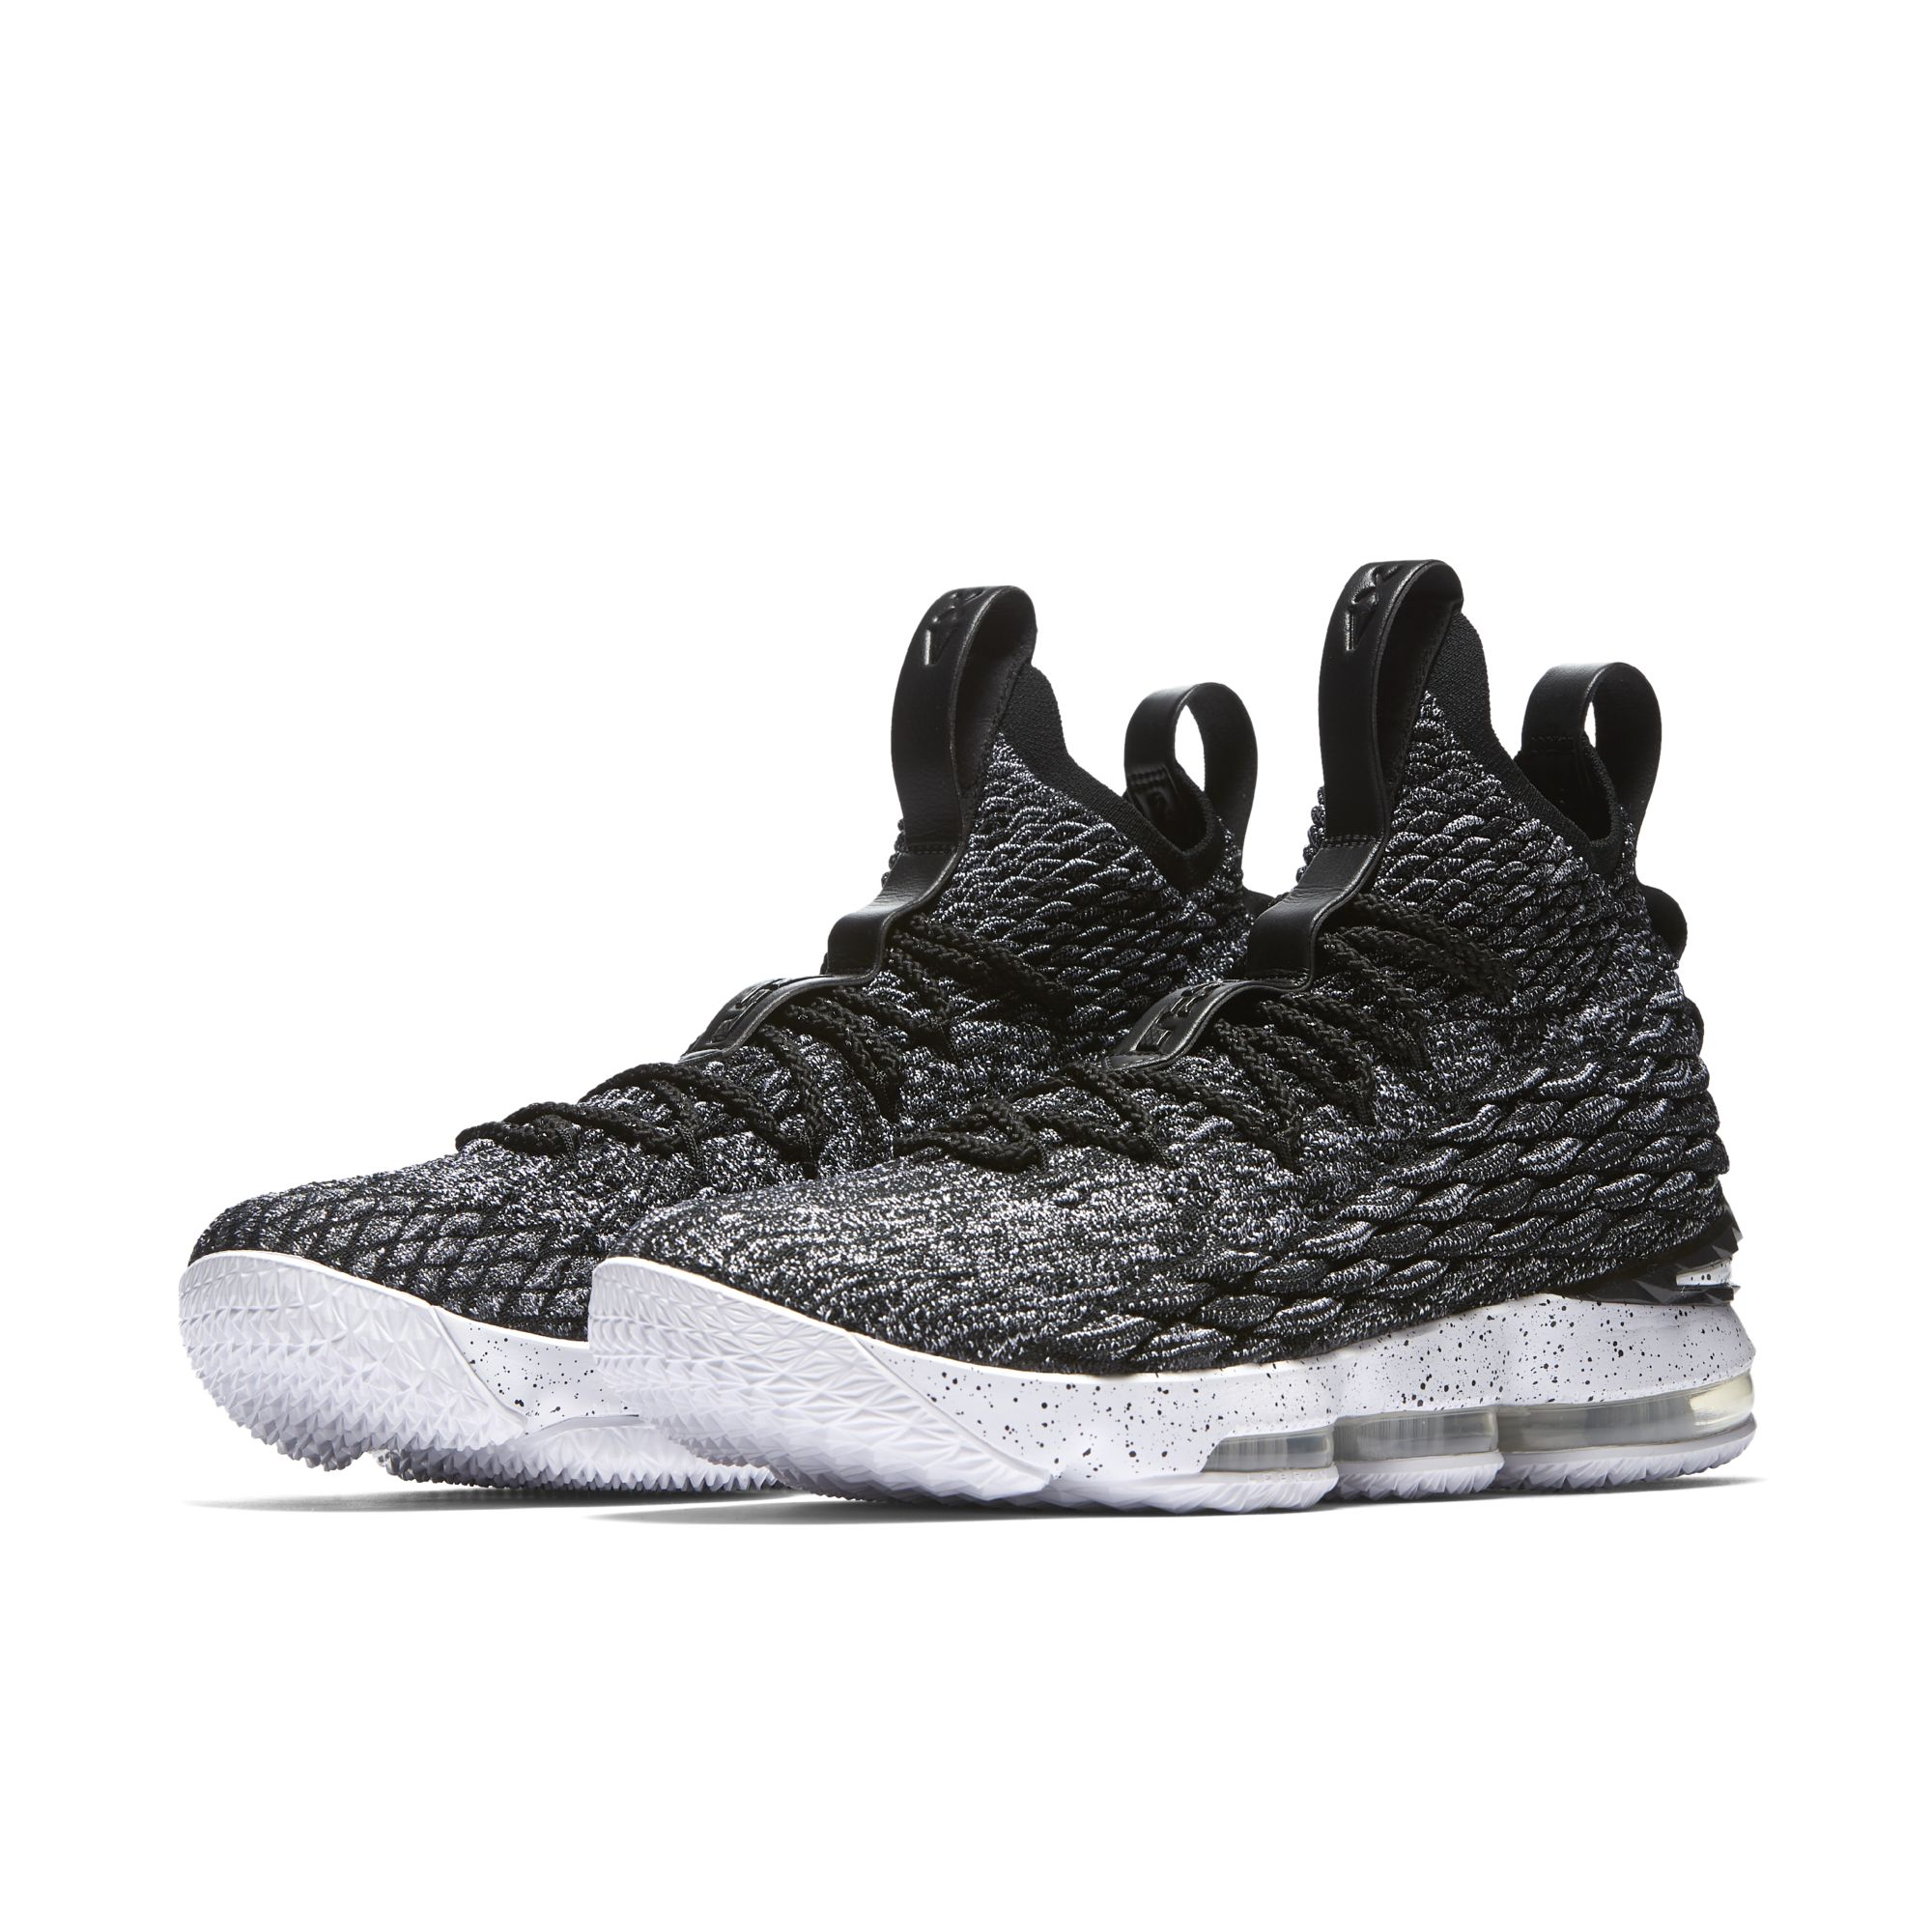 8950497d67c Official Images of the Nike LeBron 15  Ashes  - WearTesters